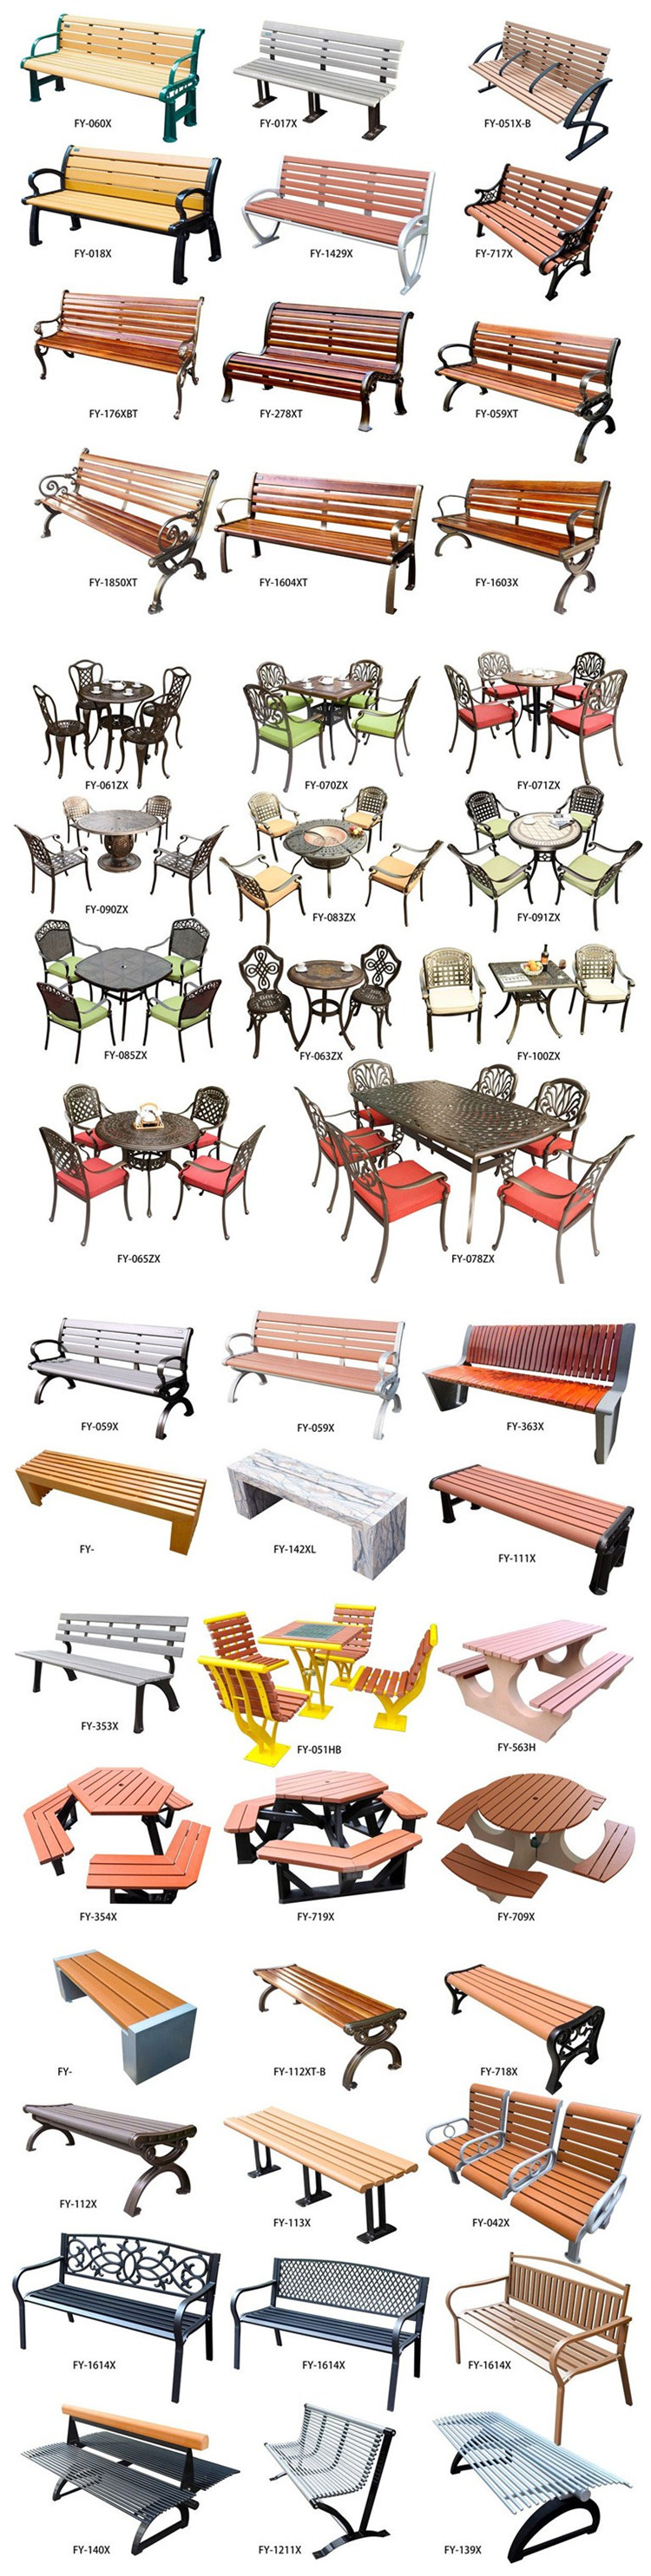 Peachy Chinese Elm Recycle Rustic Design Garden Patio Furniture Solid Wood Chair Made In India Wood Bench View Best Outdoor Patio Bench Fengyuan Fengyuan Andrewgaddart Wooden Chair Designs For Living Room Andrewgaddartcom